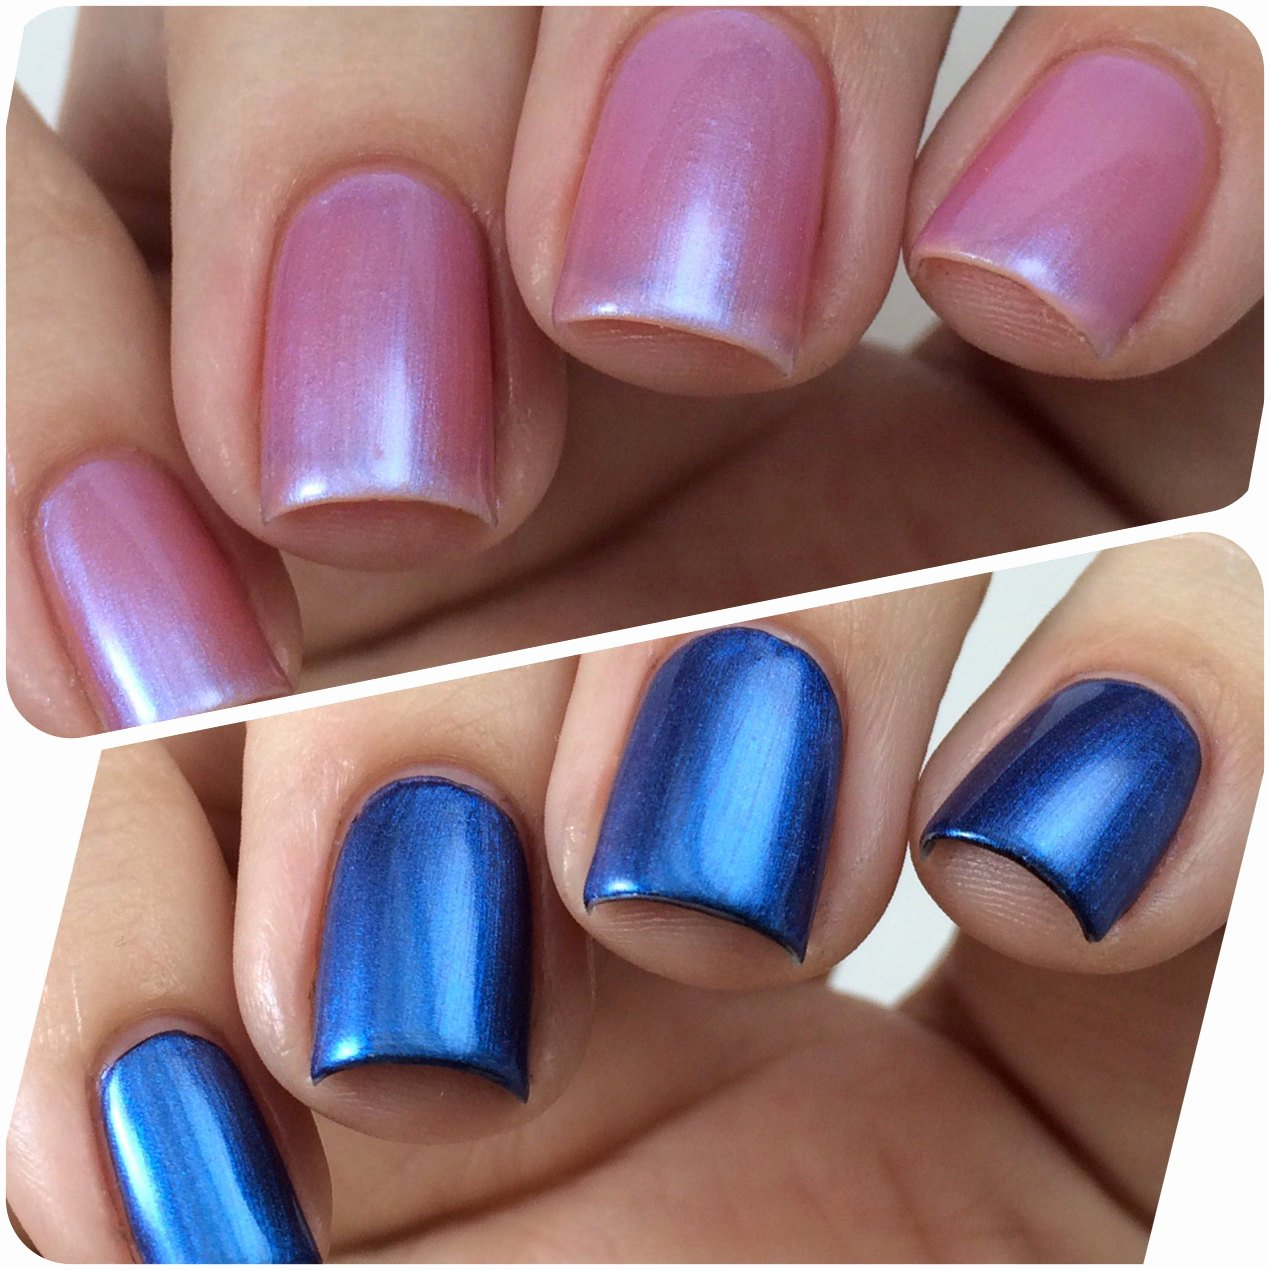 Blue Nail Polish Designs Beautiful Color Changing Nail Polish Pink Nail Polish Blue Nail